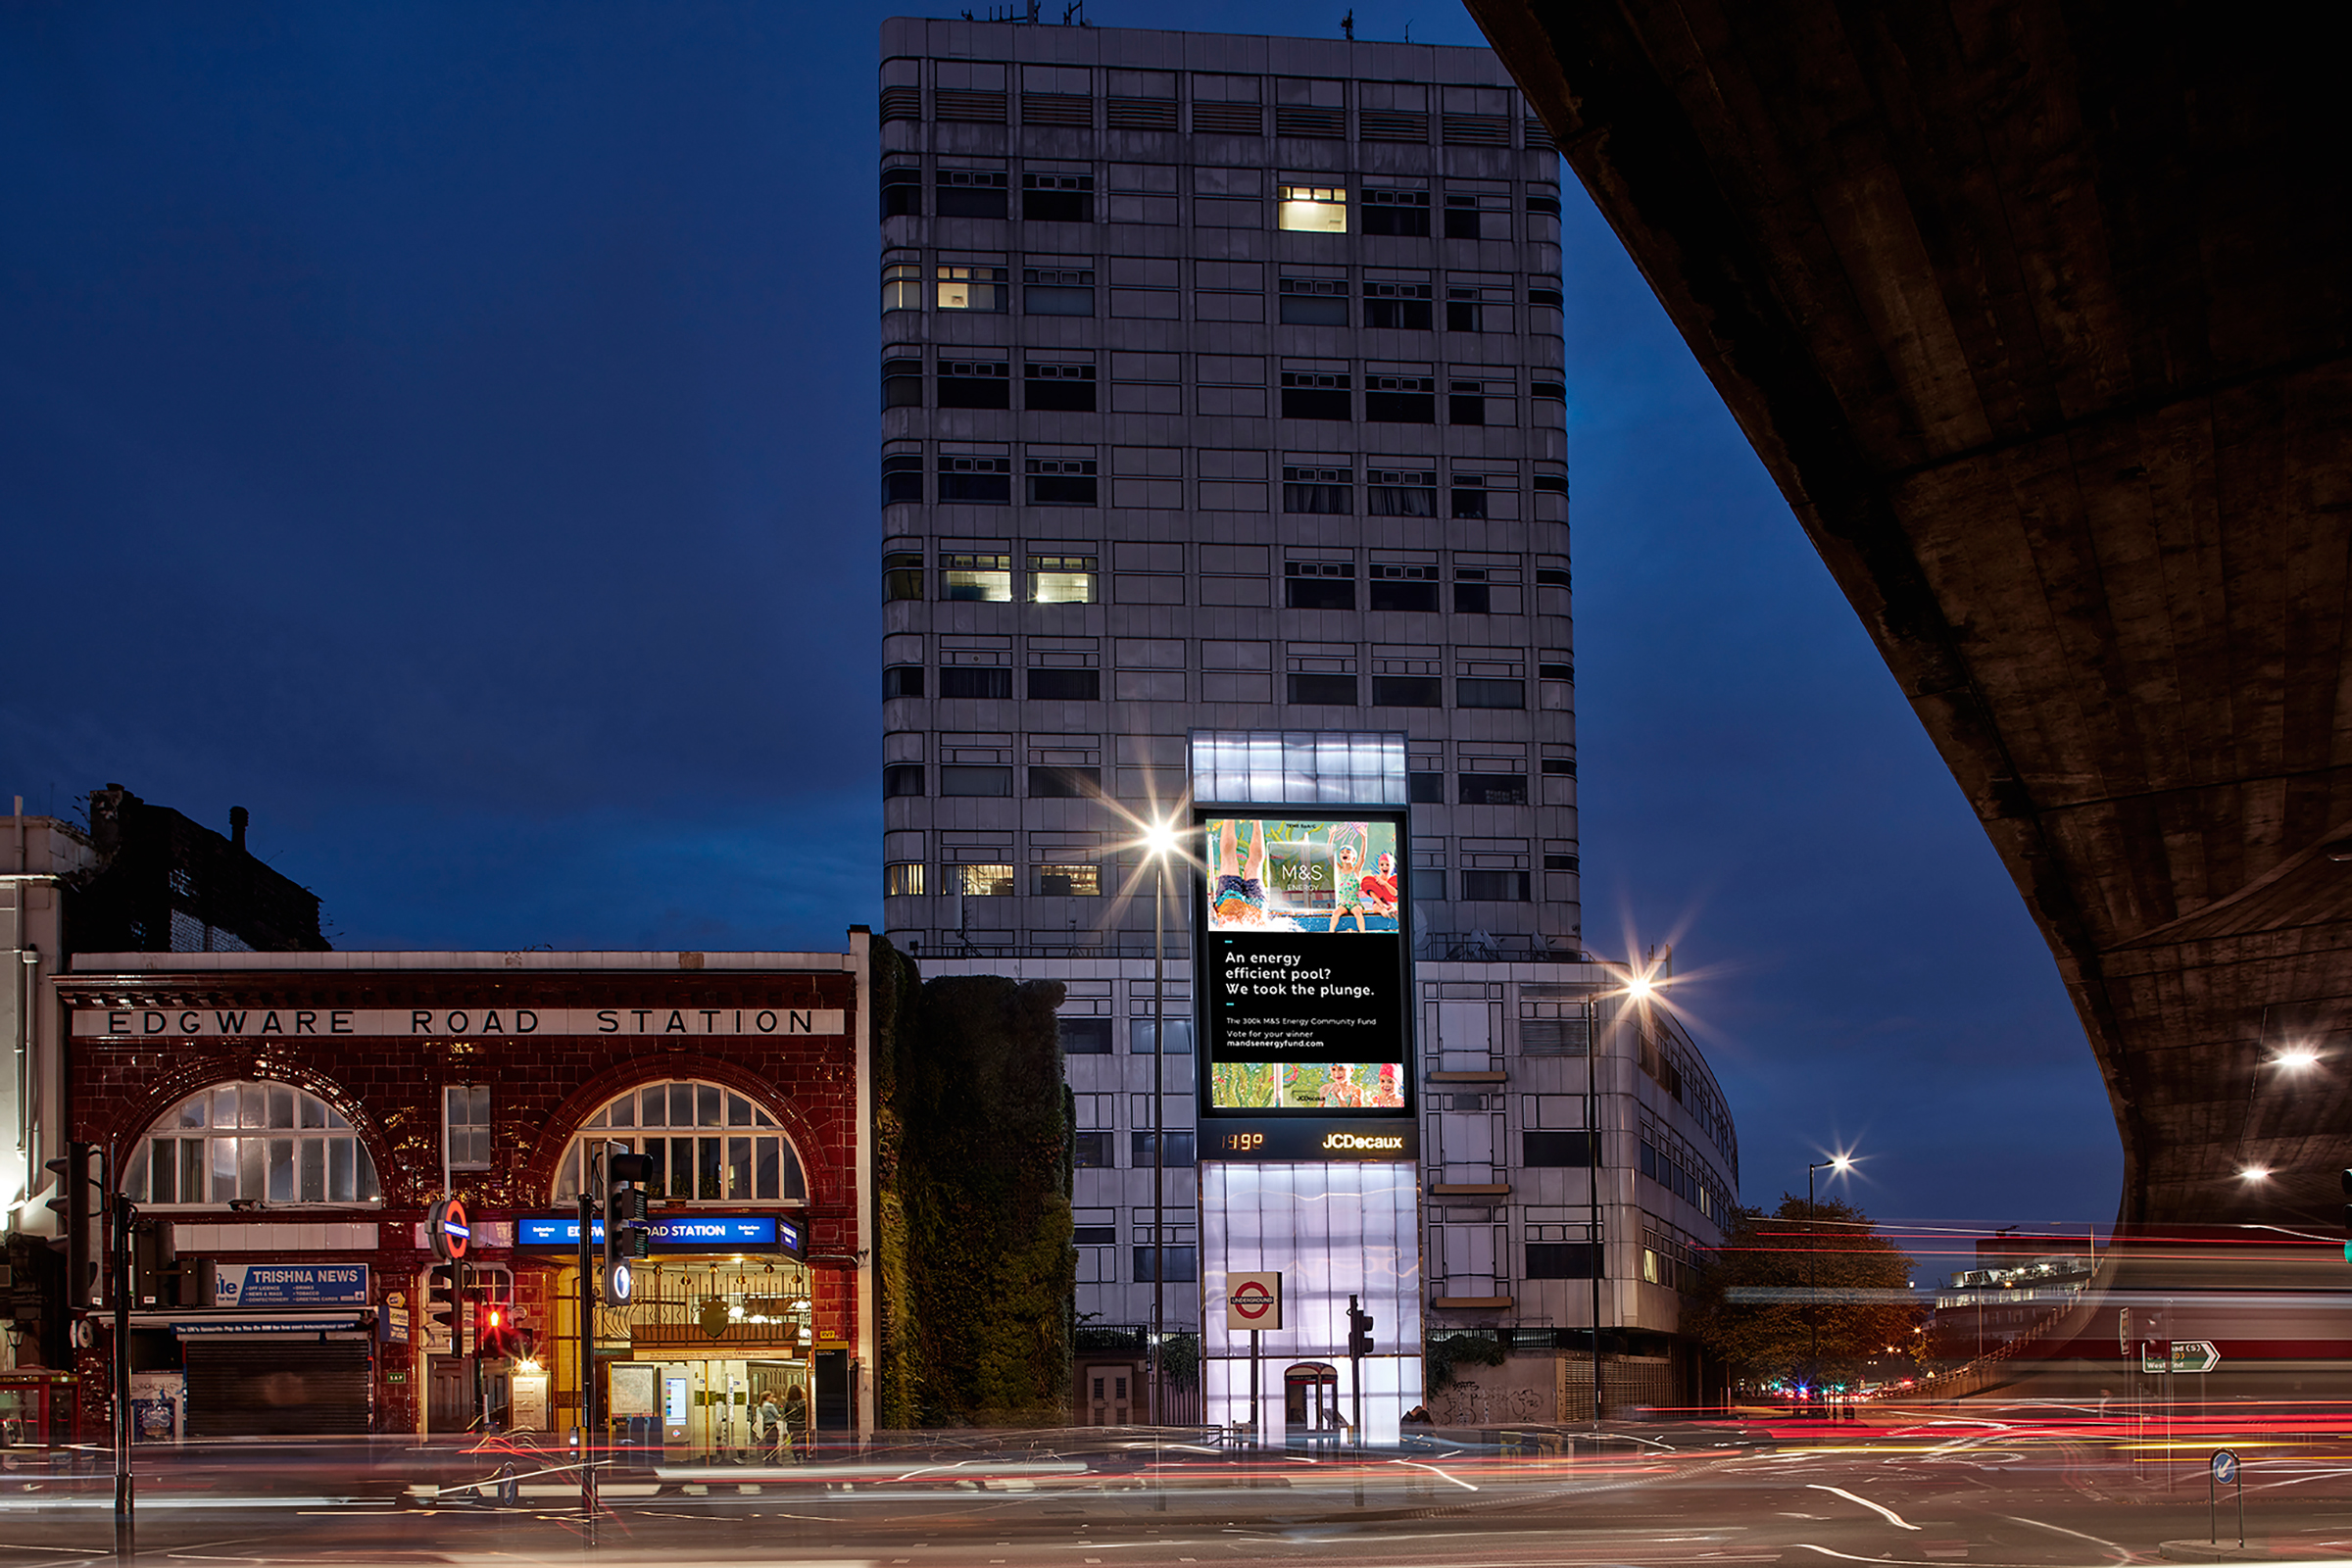 M&S-Billboards-043.jpg